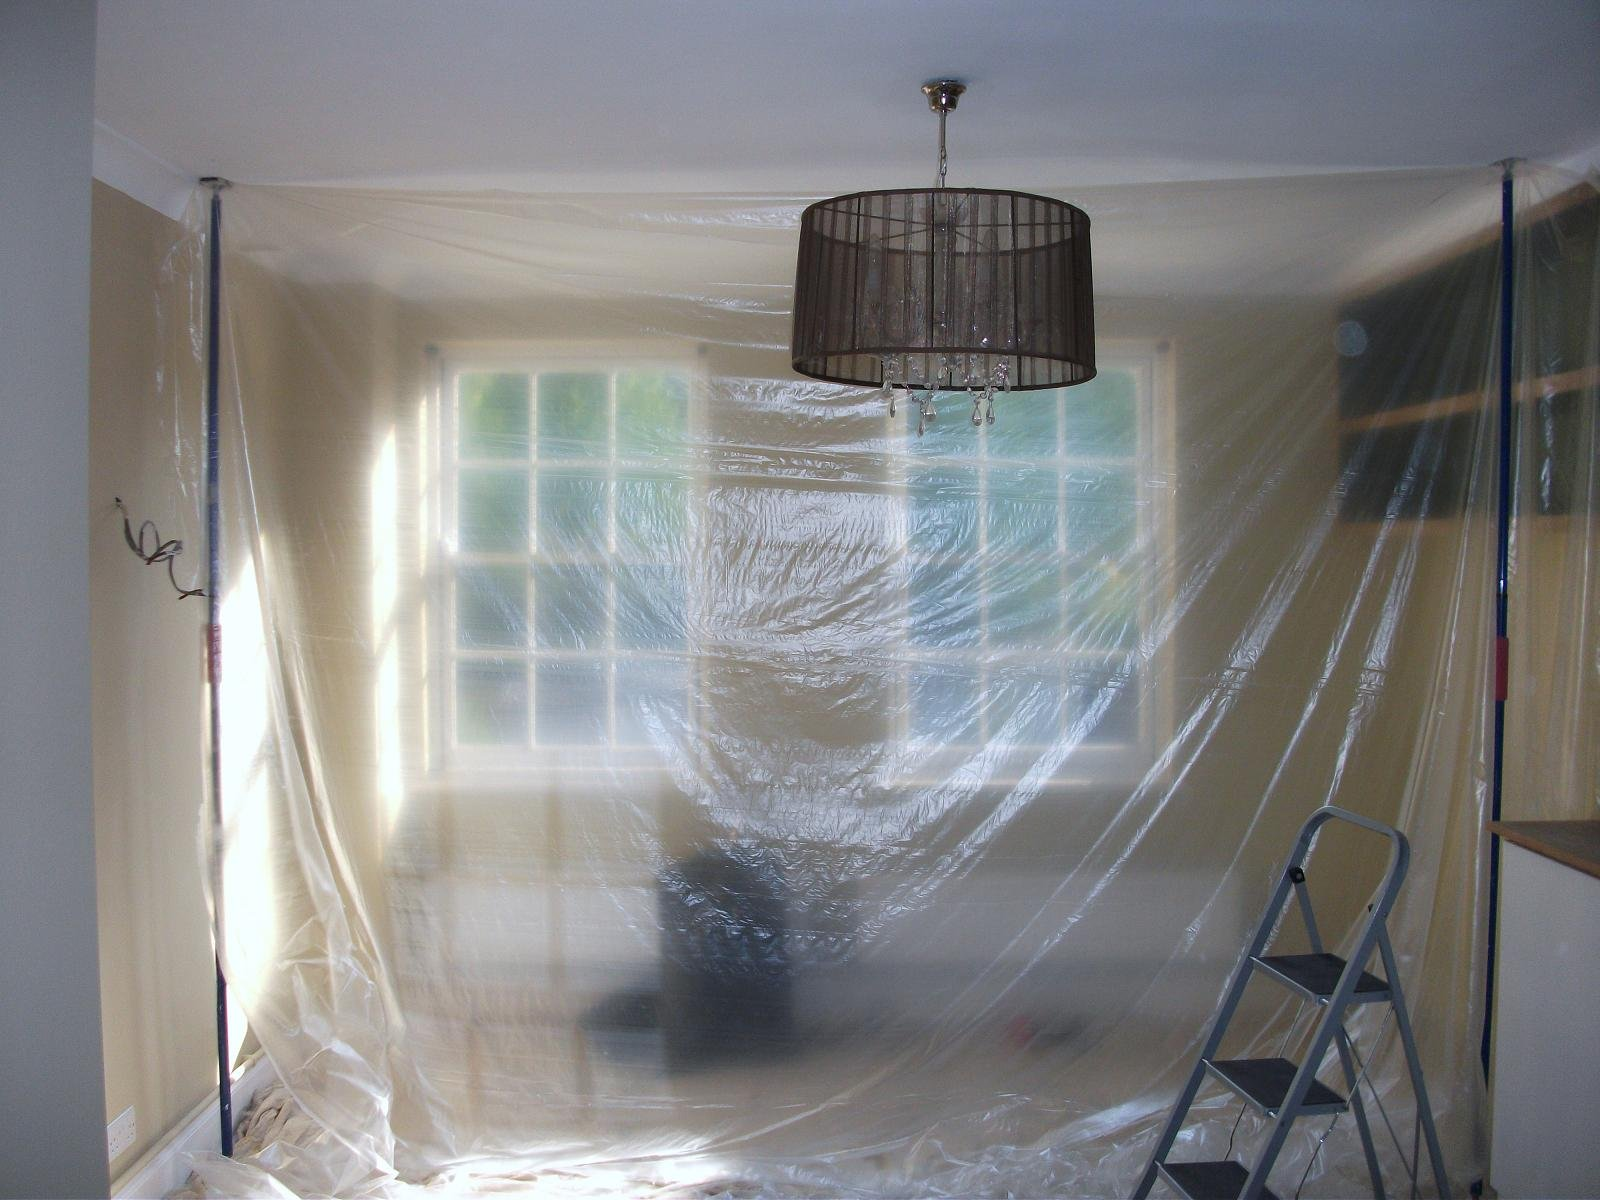 Plastic sheets for dust protection